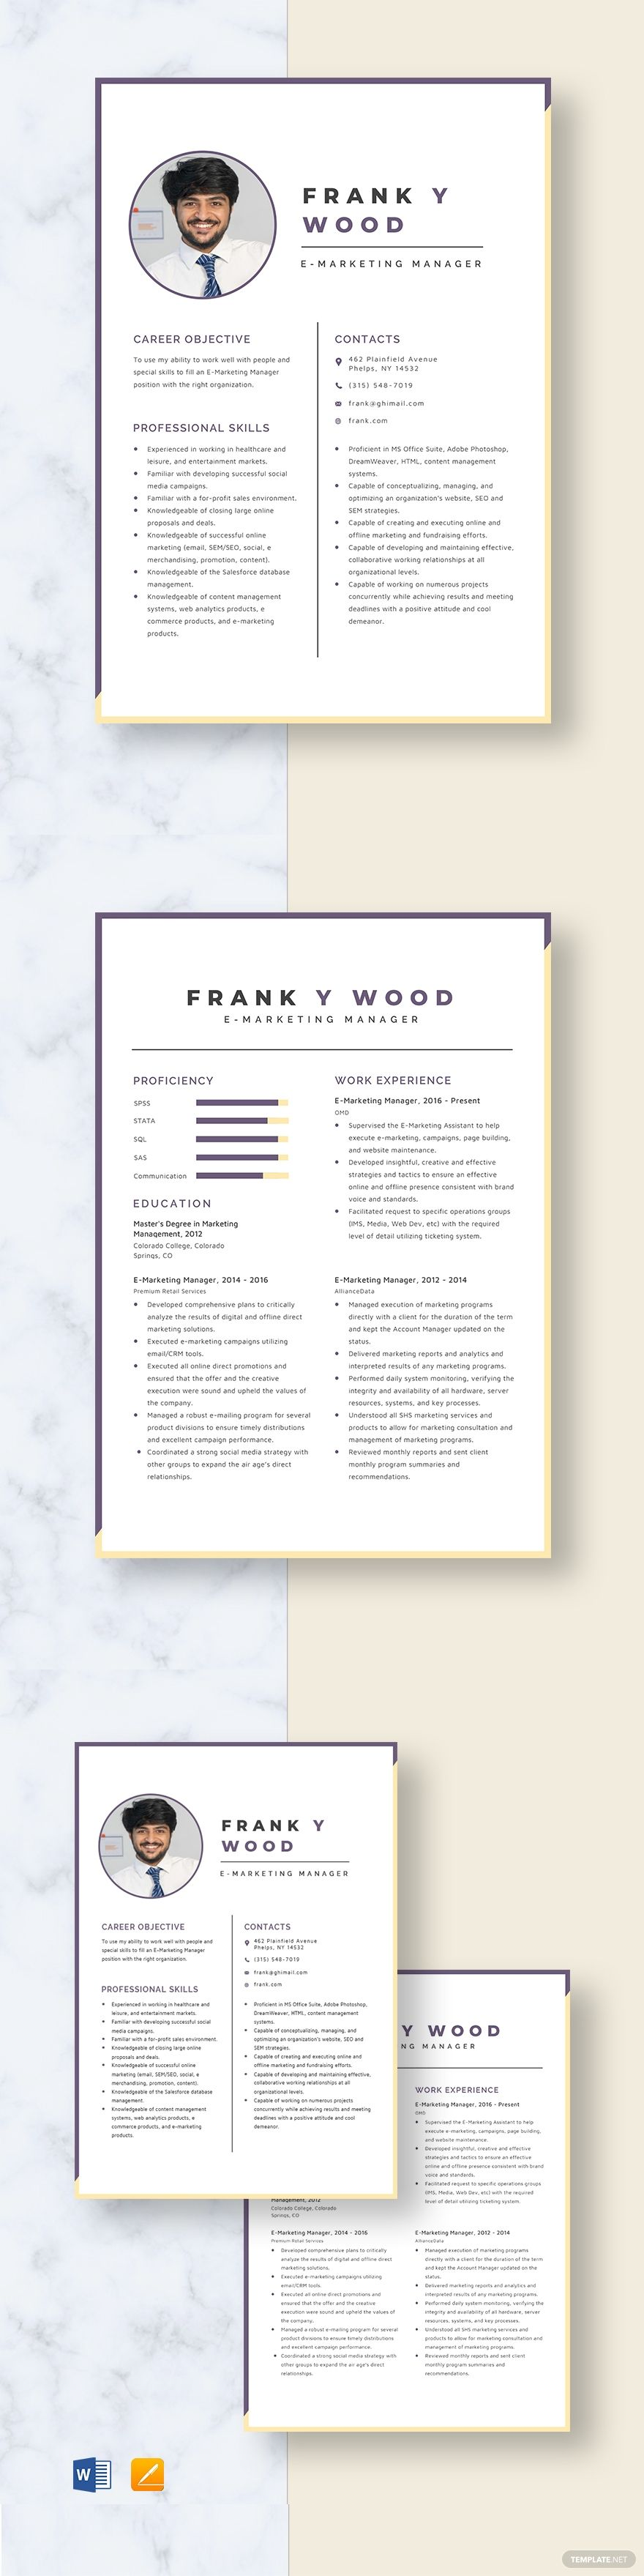 Emarketing manager resume template in 2020 manager